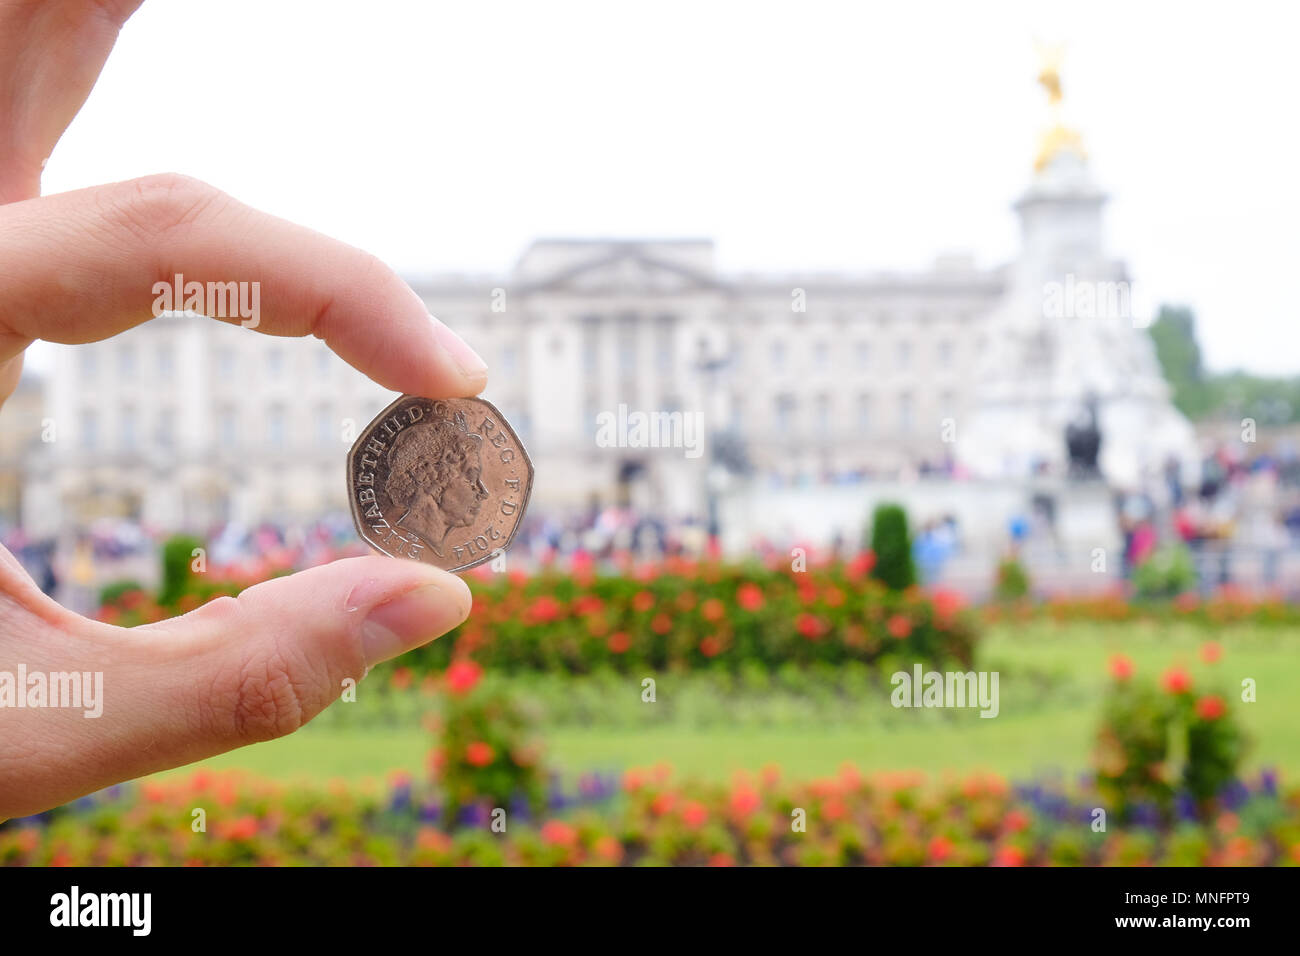 English coin picturing the Queen in front of Buckingham Palace. Focus on the coin. Artistic interpretation. - Stock Image